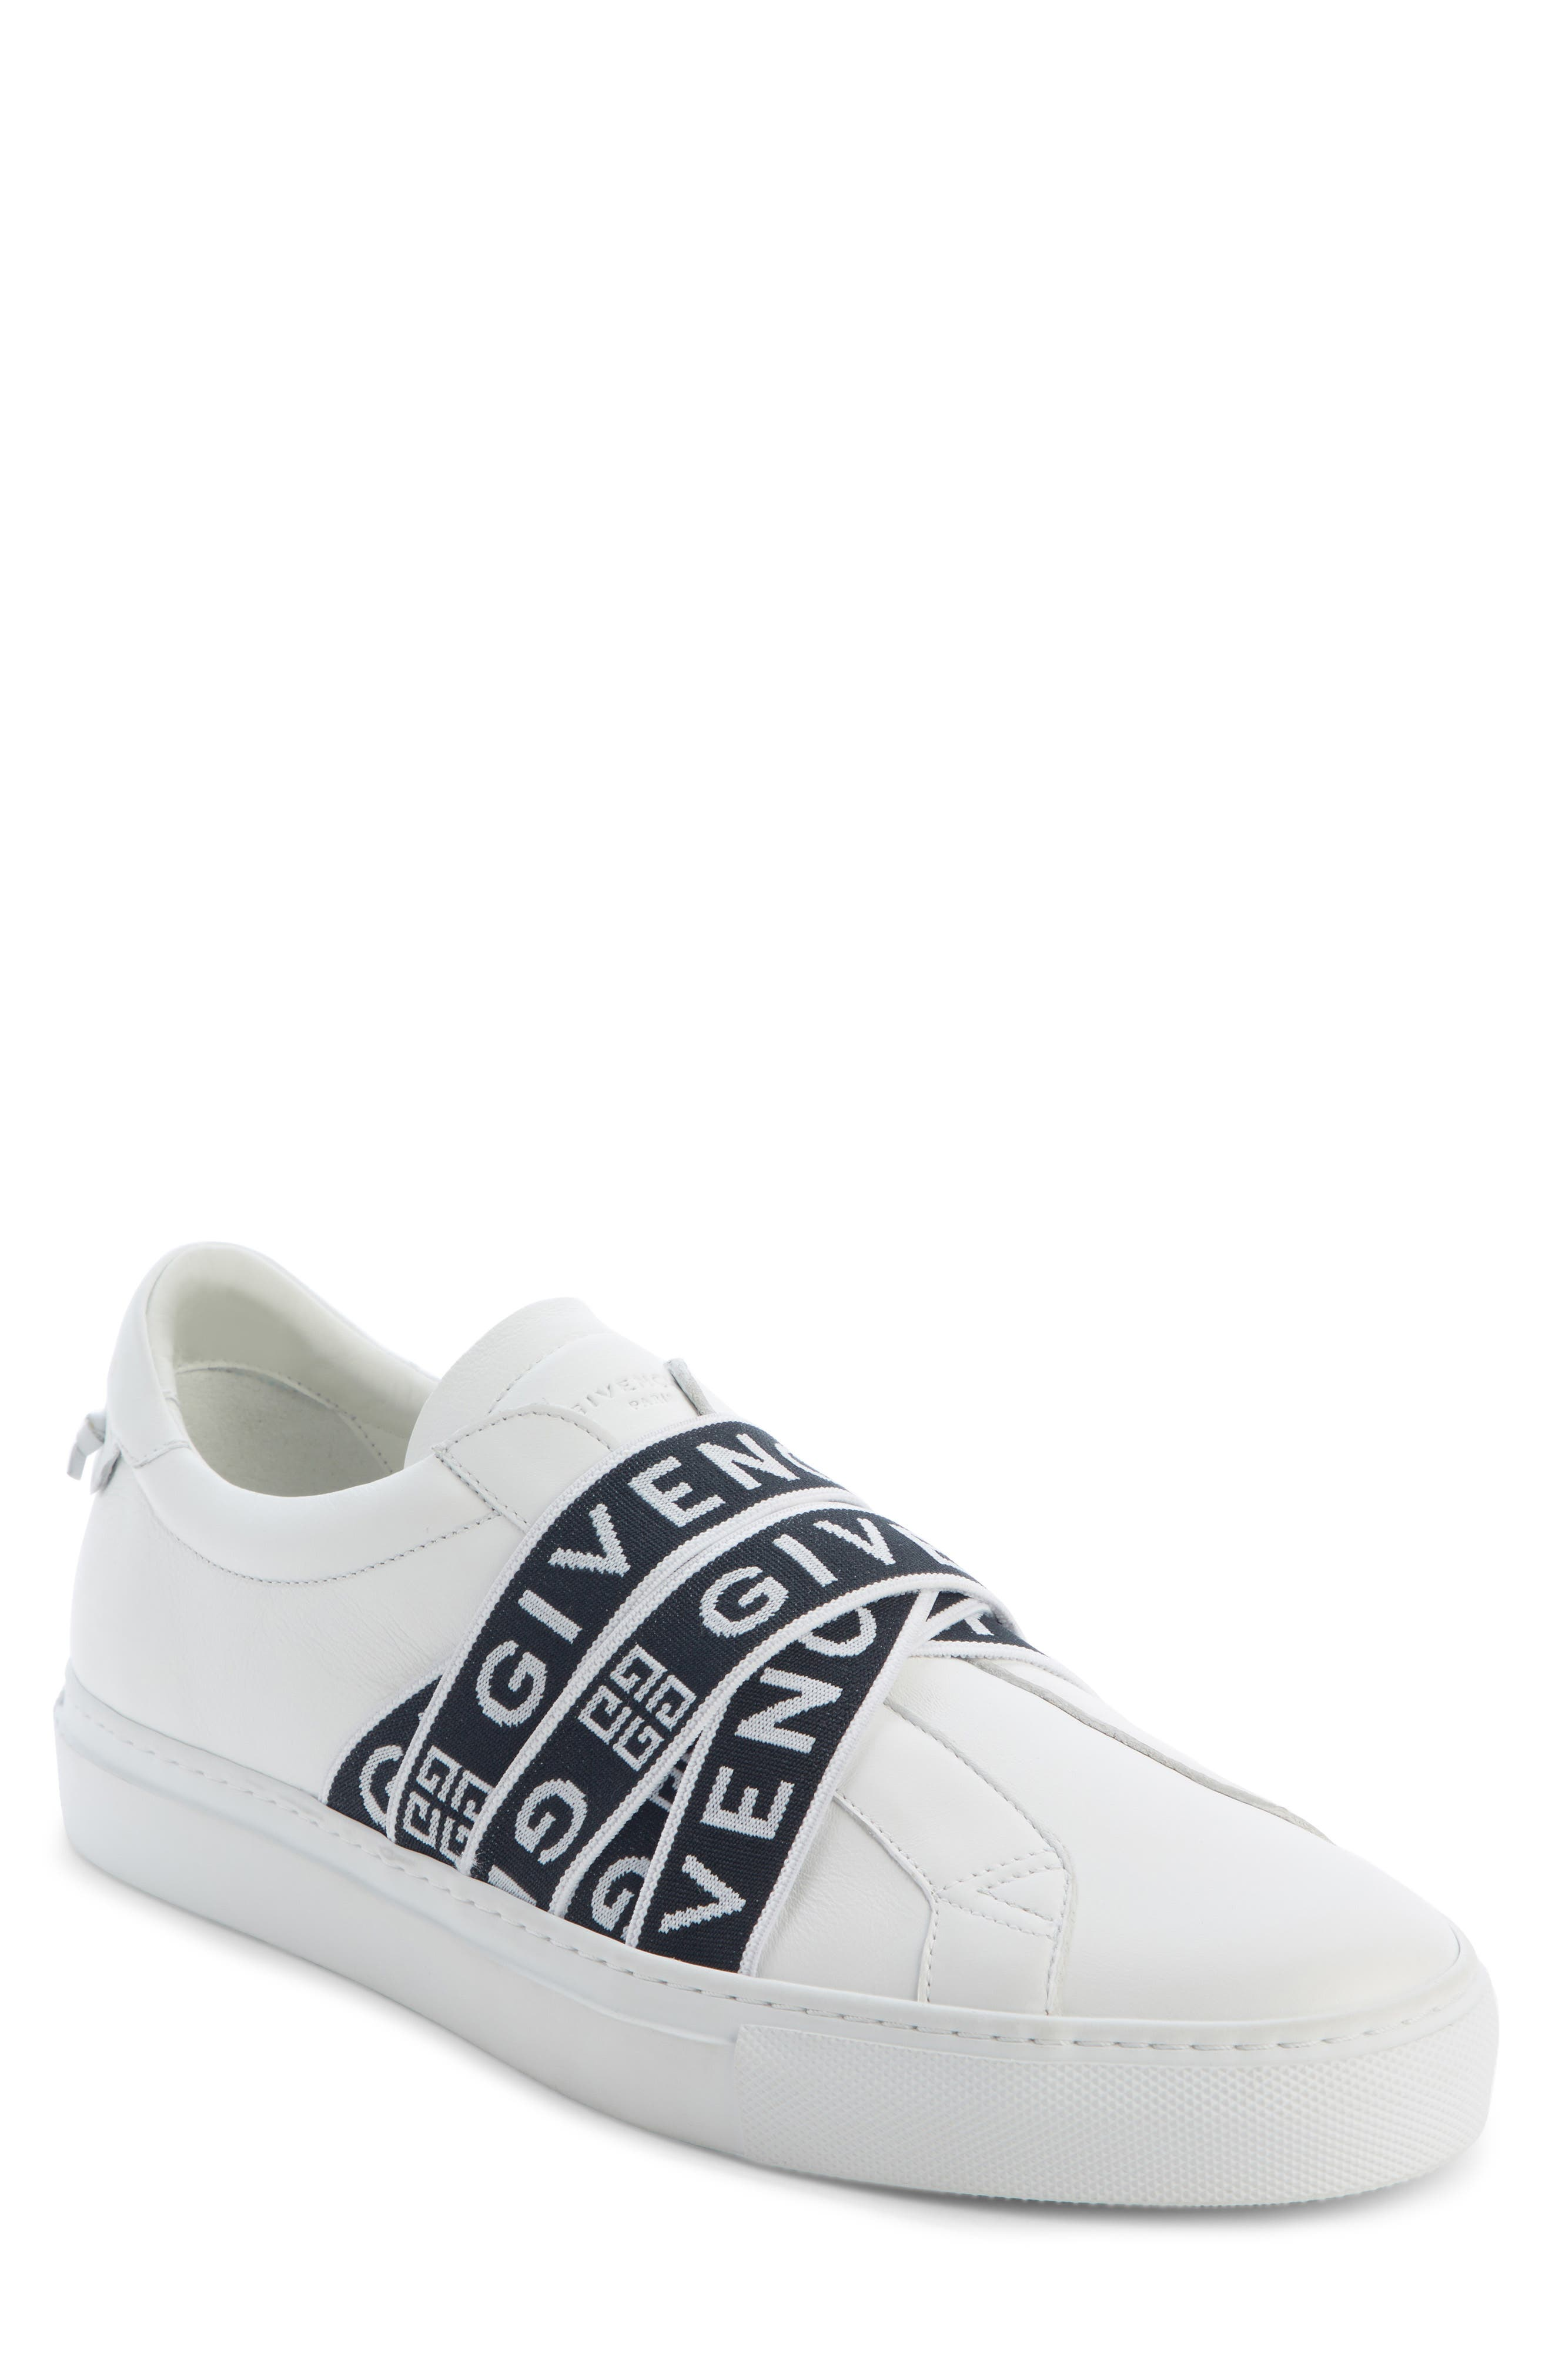 Urban Street Slip-On,                             Main thumbnail 1, color,                             WHITE/ BLACK